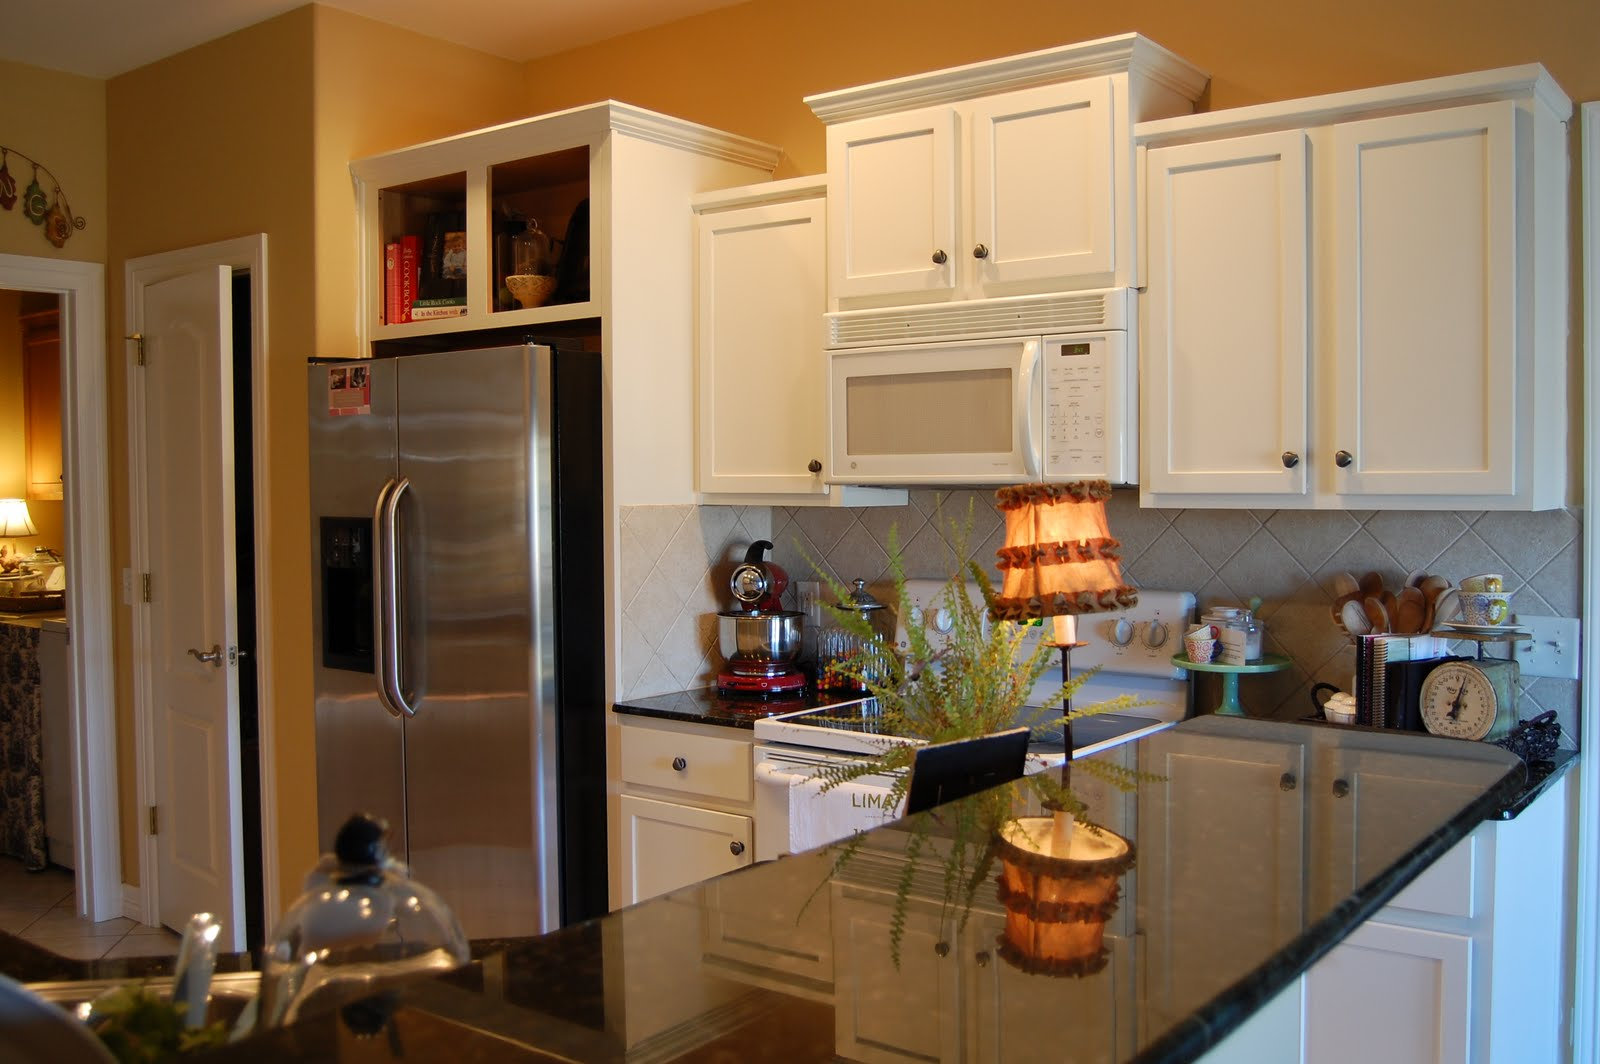 Image of: open area above kitchen cabinets